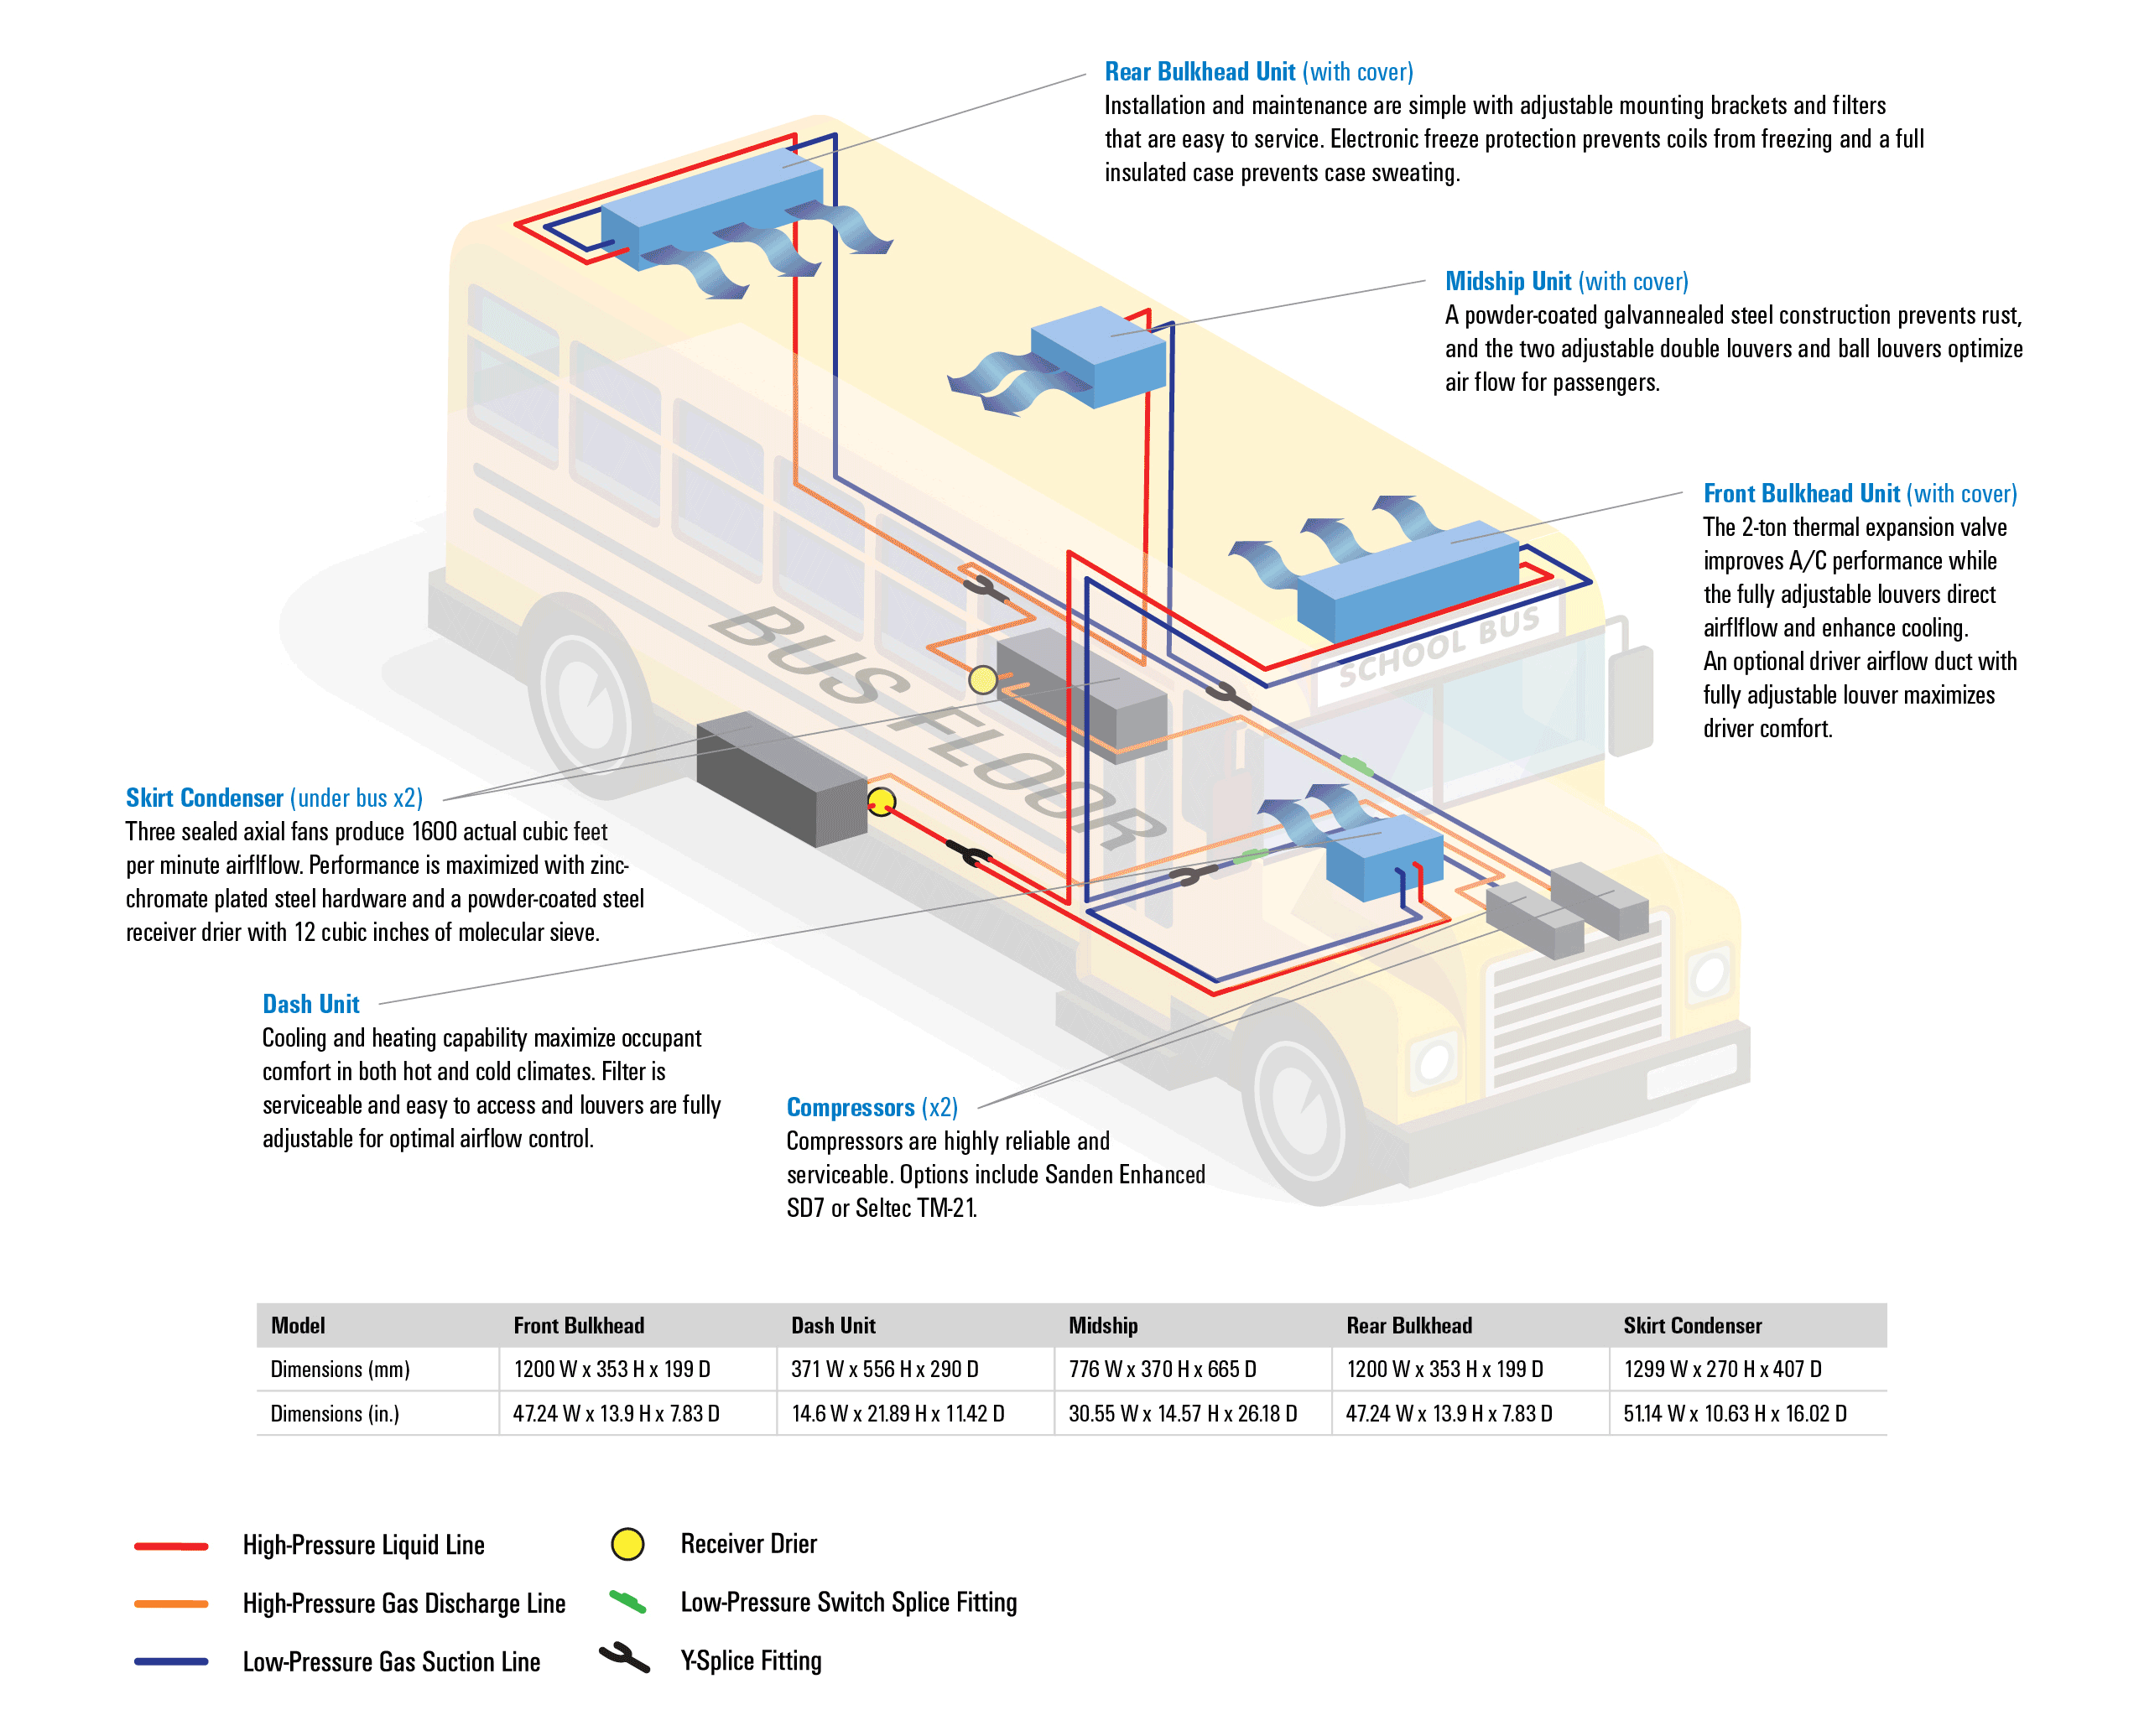 Bus New Flyer Buses Wiring Diagram on